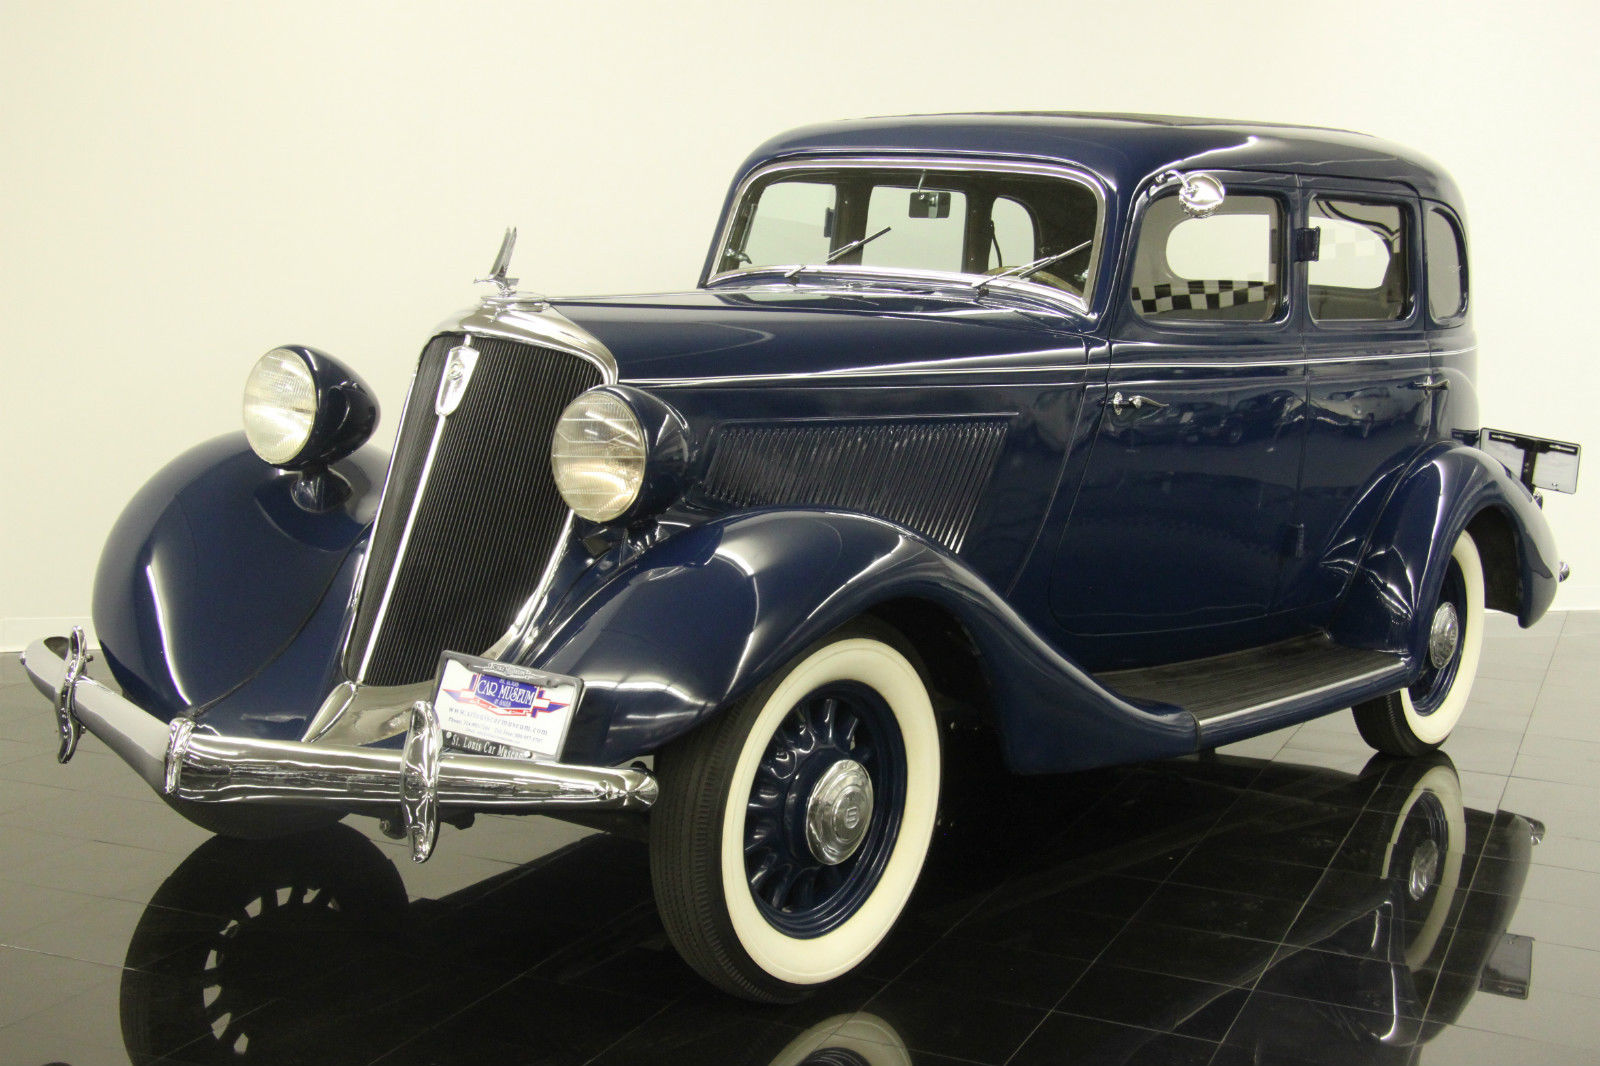 1934 Studebaker Dictator Rare Frame Off Restored To Original Highly 1951 Plymouth Wiring Diagram